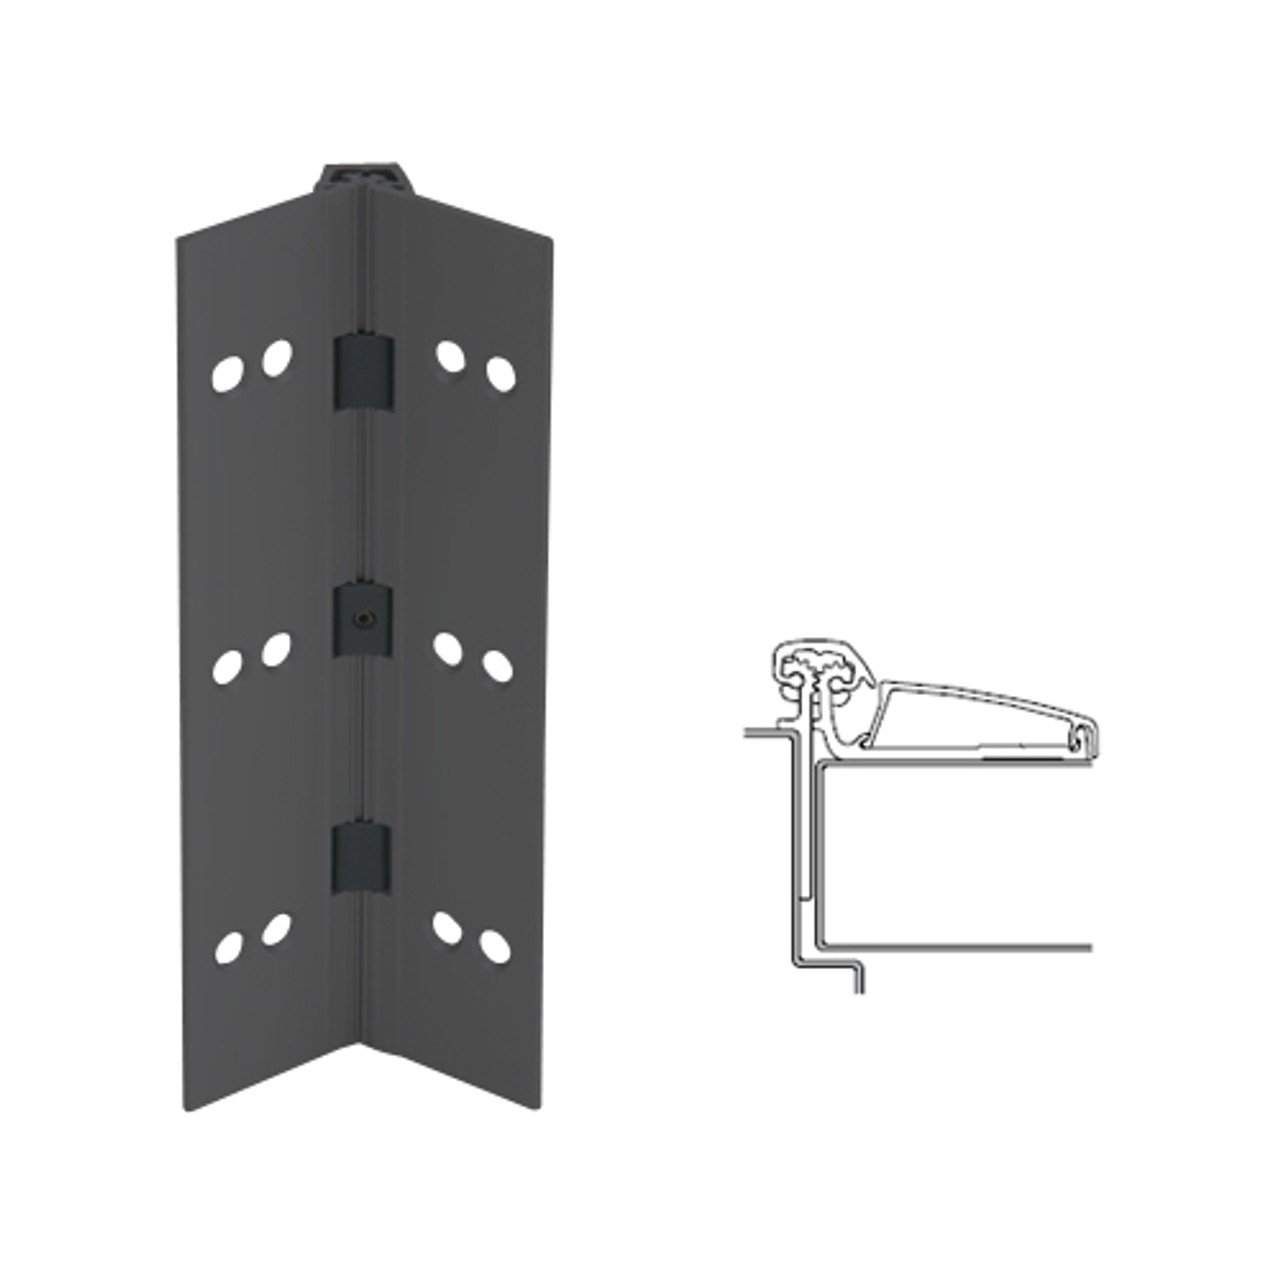 045XY-315AN-85-SECWDWD IVES Adjustable Half Surface Continuous Geared Hinges with Security Screws - Hex Pin Drive in Anodized Black